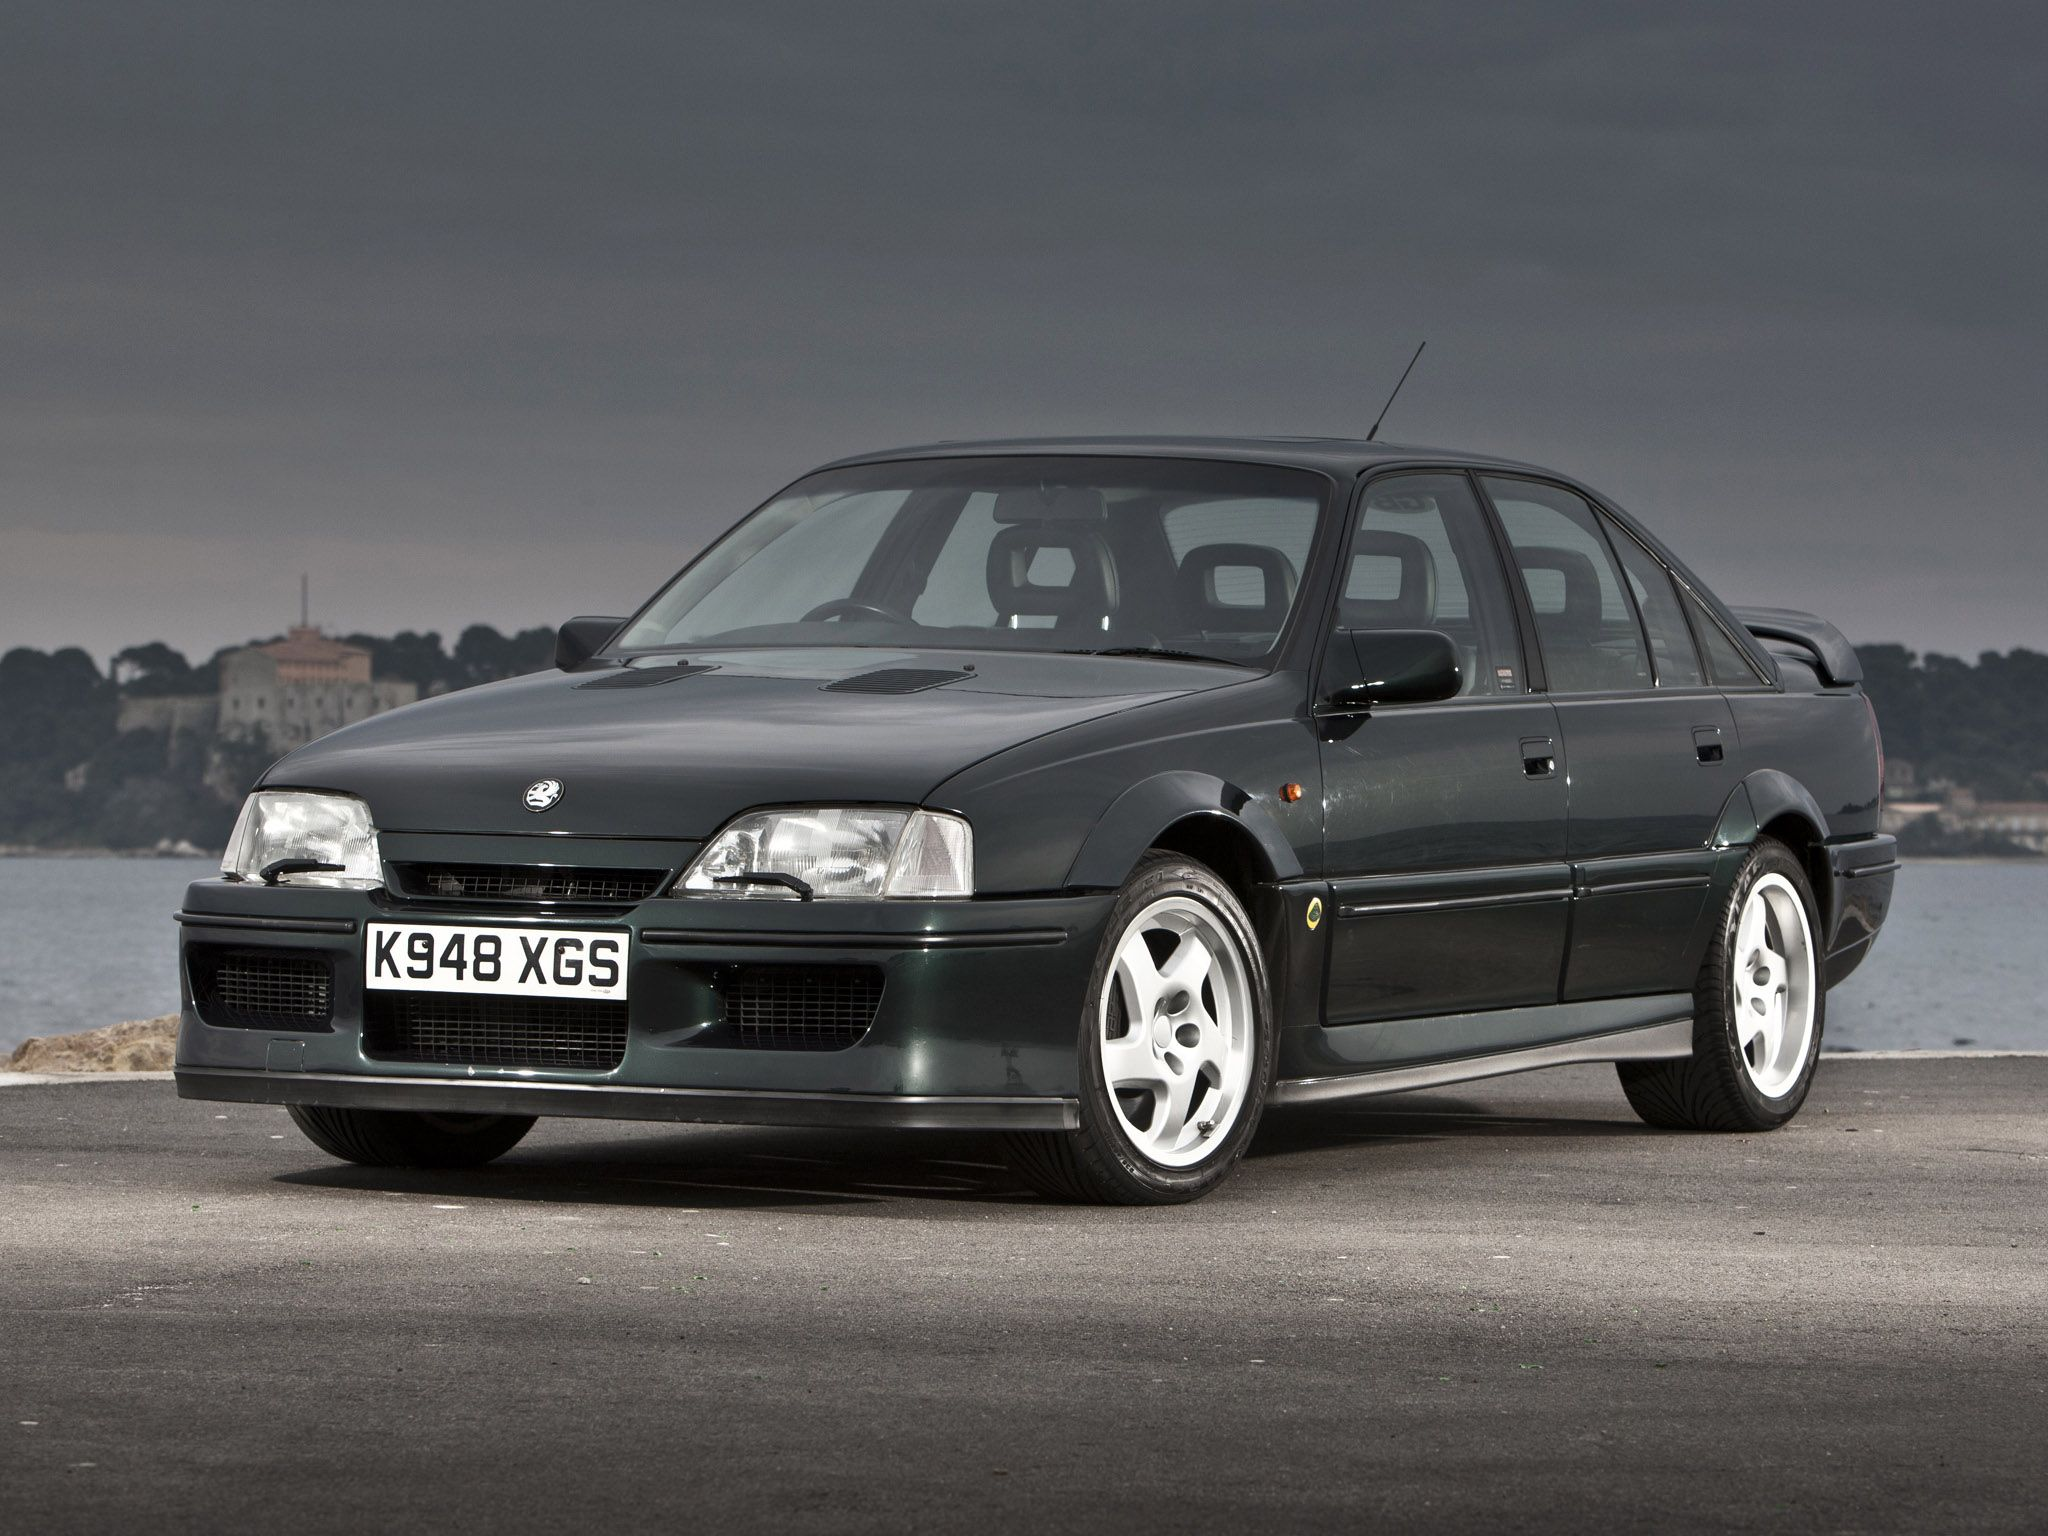 1990 vauxhall lotus carlton quickest family sedan of its day 177 mph top speed the press. Black Bedroom Furniture Sets. Home Design Ideas